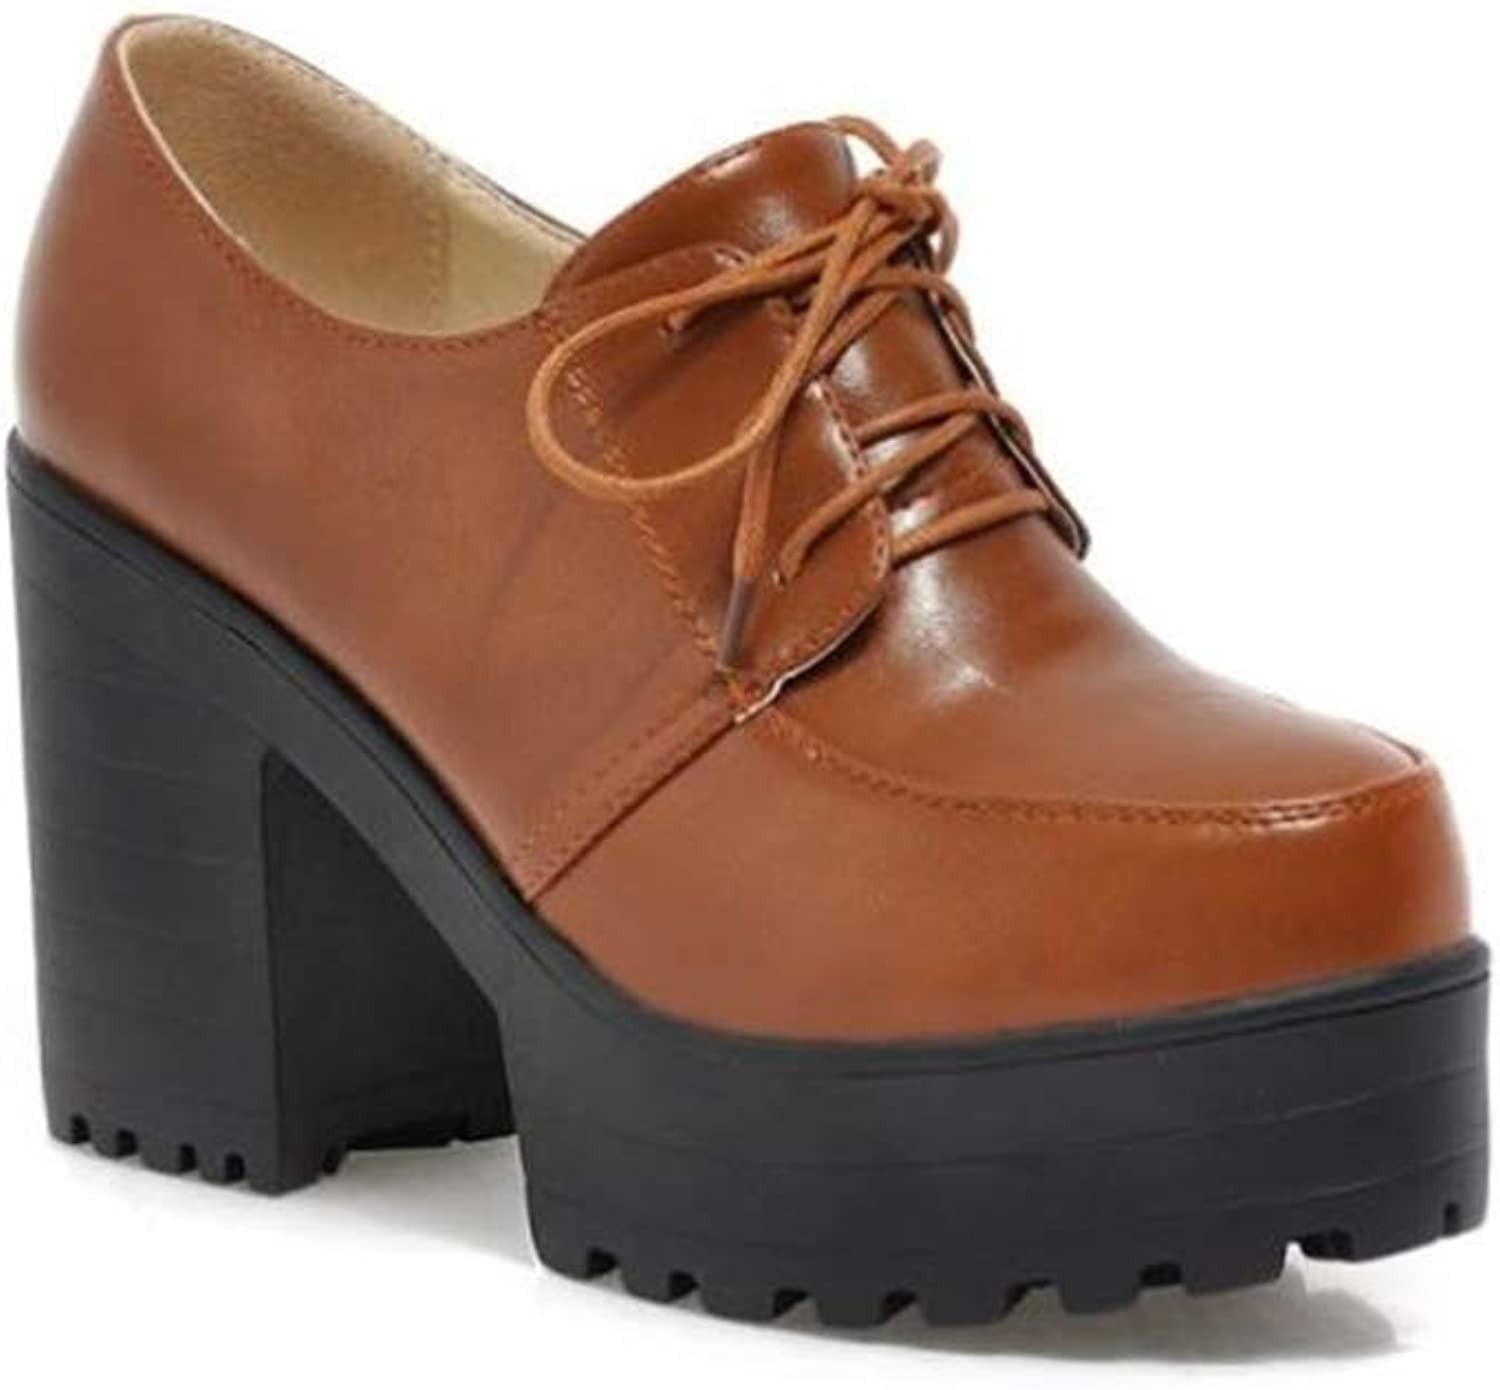 FUN.S Womens Comfortable Low Chunky Heel Booties Closed Toe Buckle Ankle Boots